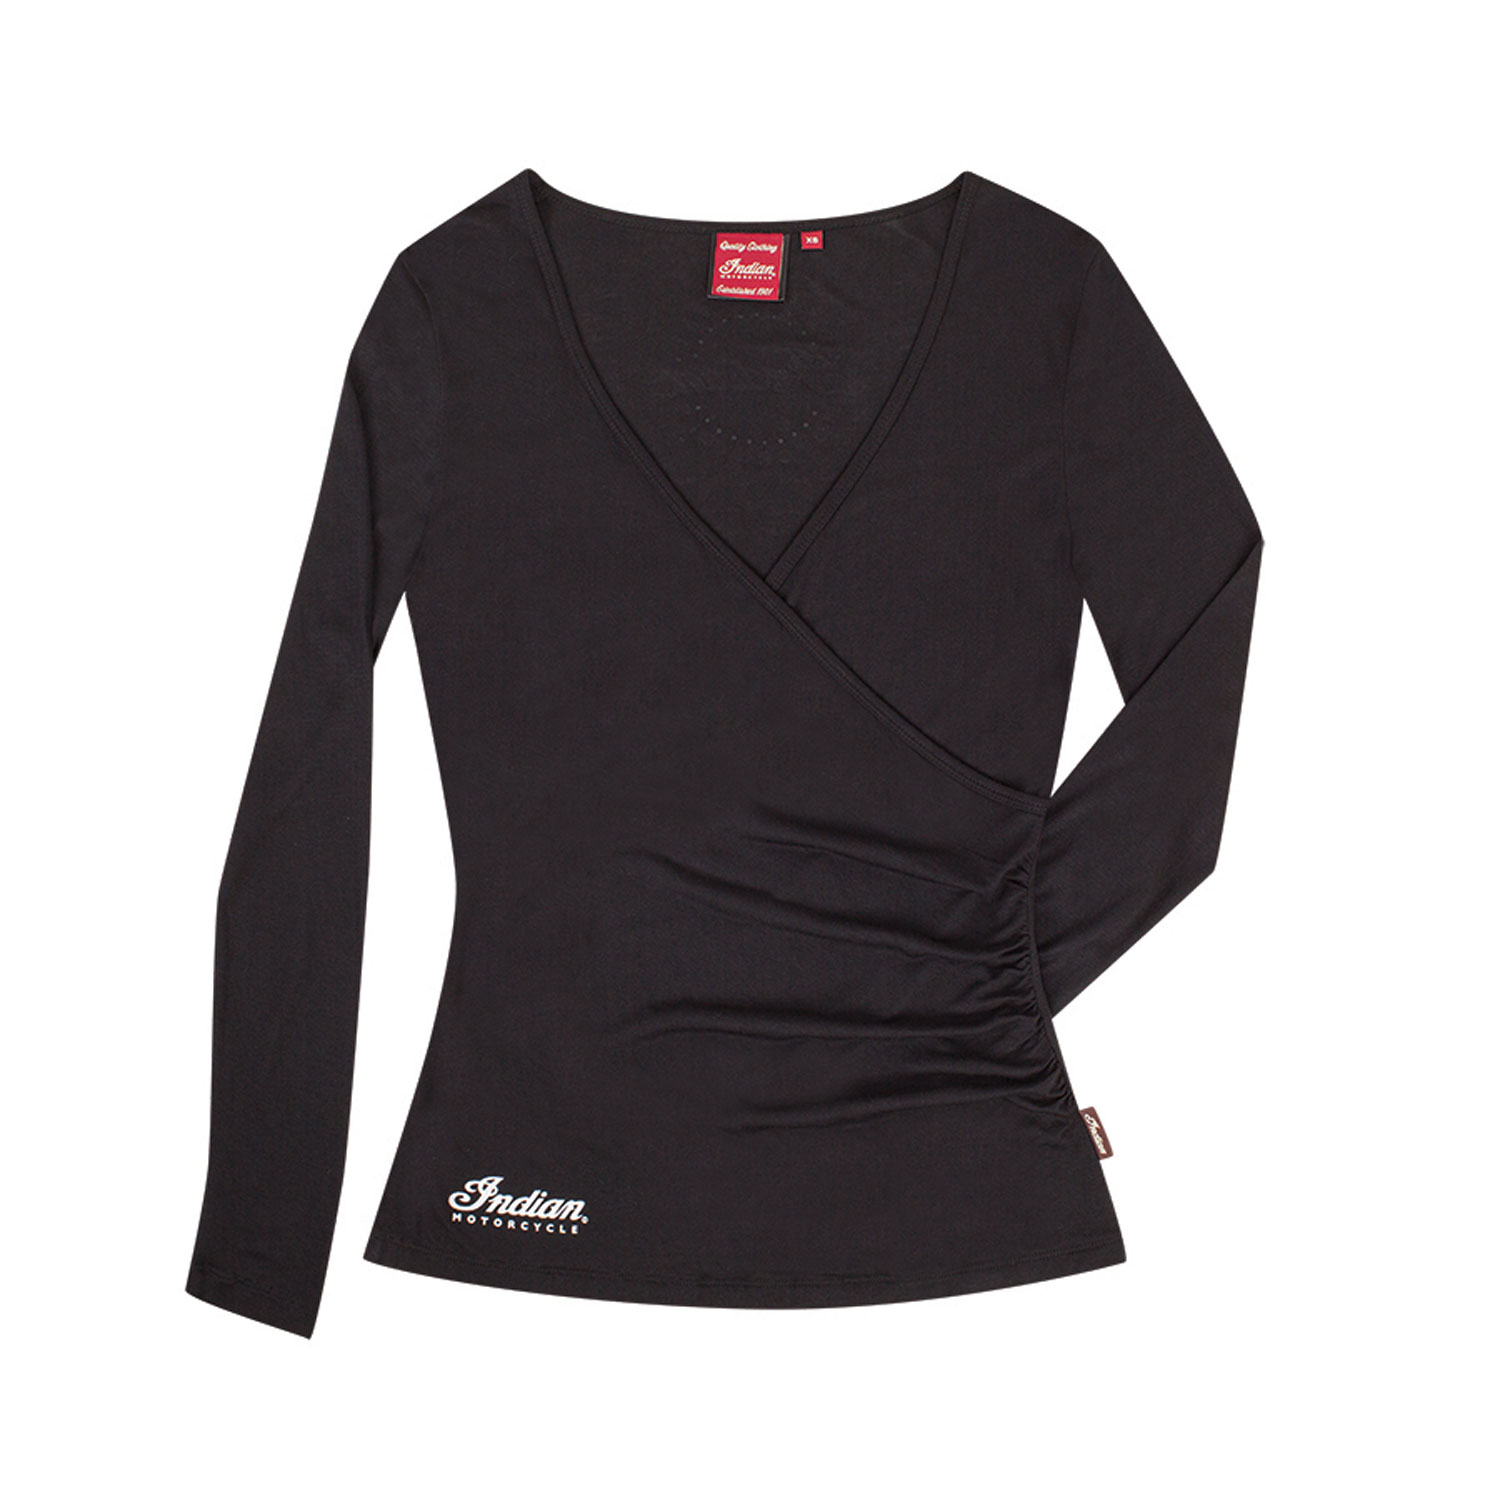 Women's Long-Sleeve Crossover T-Shirt, Black